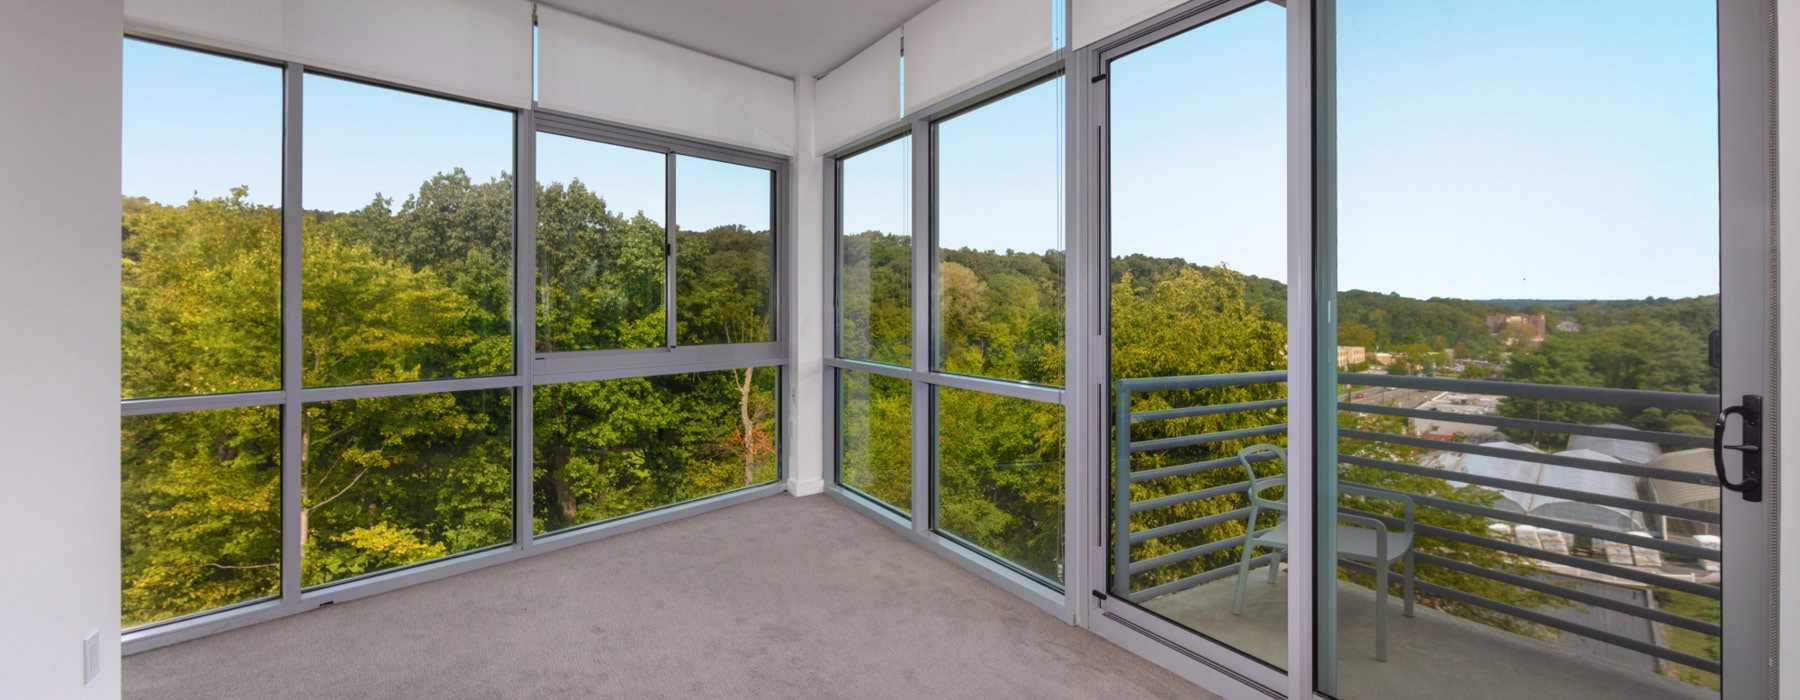 huge panel windows surround living room providing beautiful woodland views